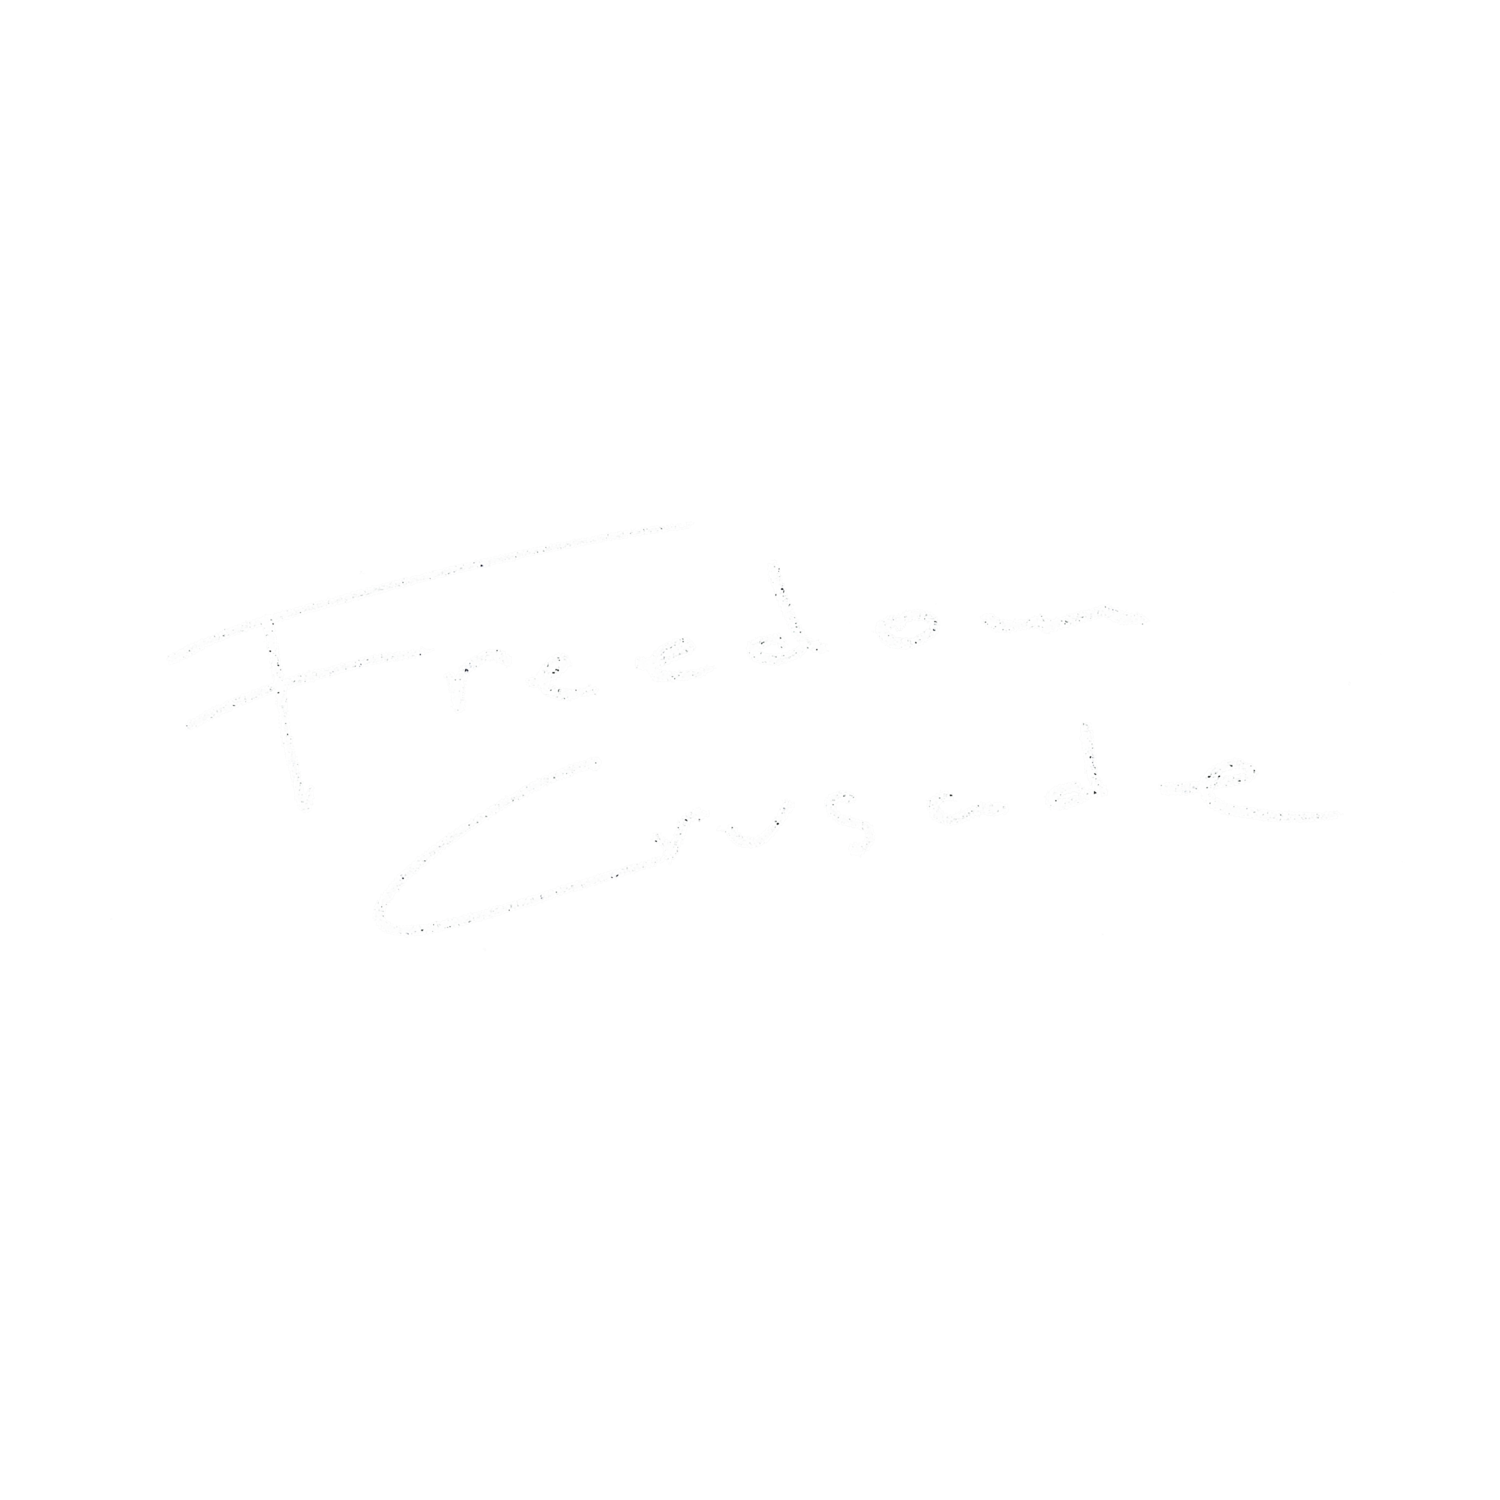 Freedom Crusade